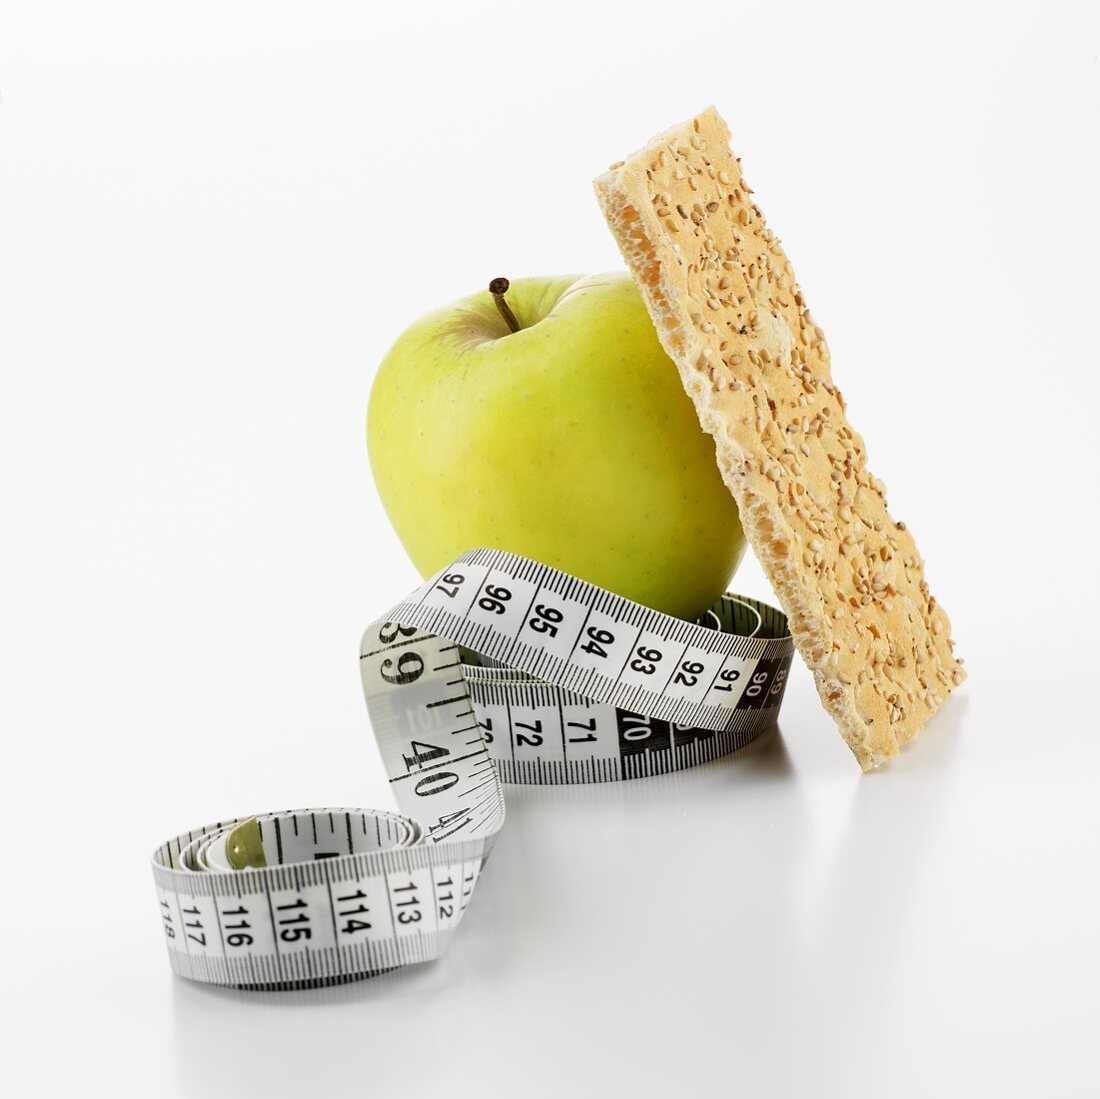 Green apple and crispbread with tape measure